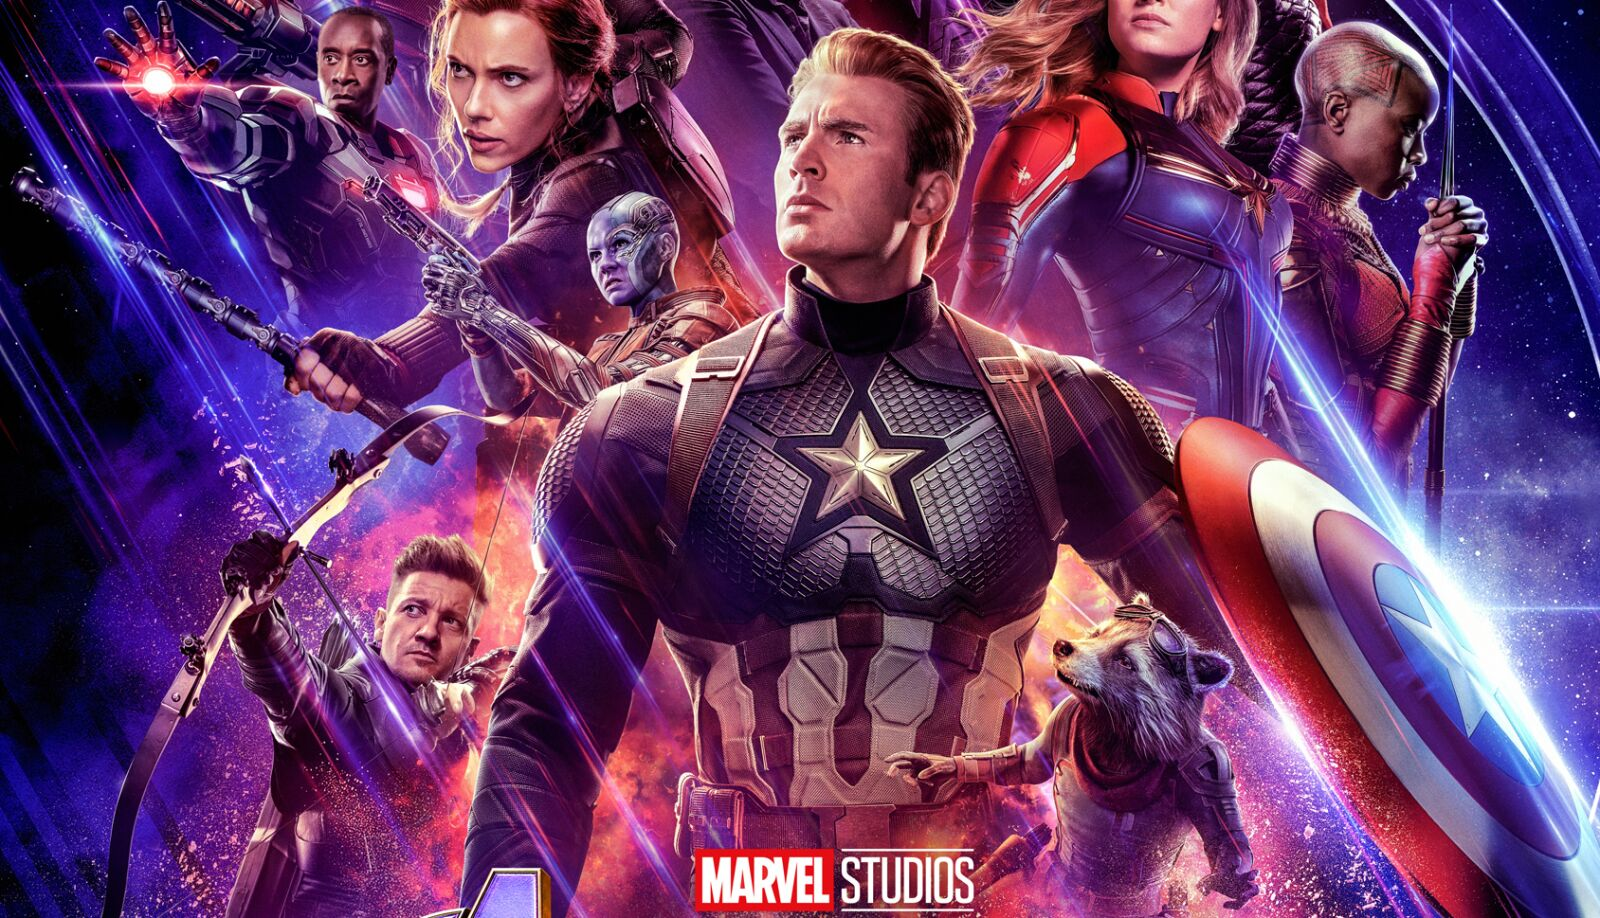 Phases 1-3 of the Marvel Cinematic Universe now have a new name